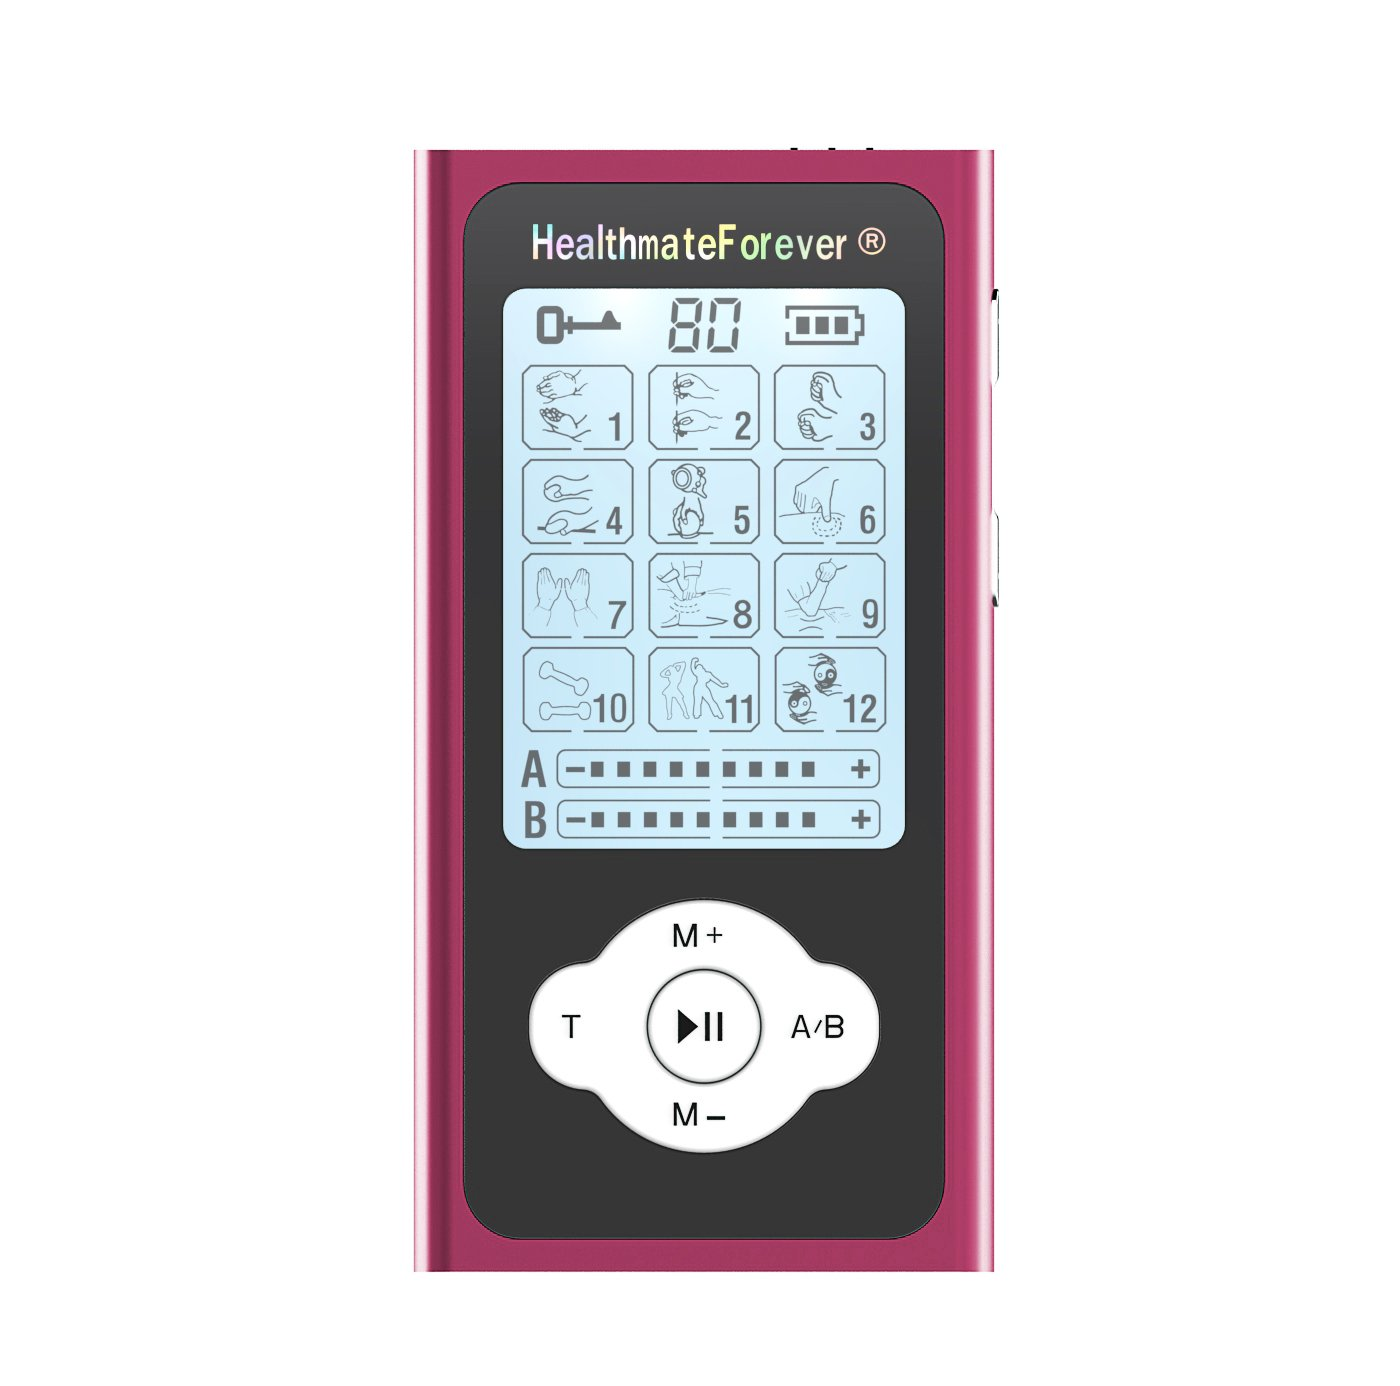 PRO12ABQ HealthmateForever TENS Unit Electrical Muscle Stimulator Red + 10 Pairs of Pads